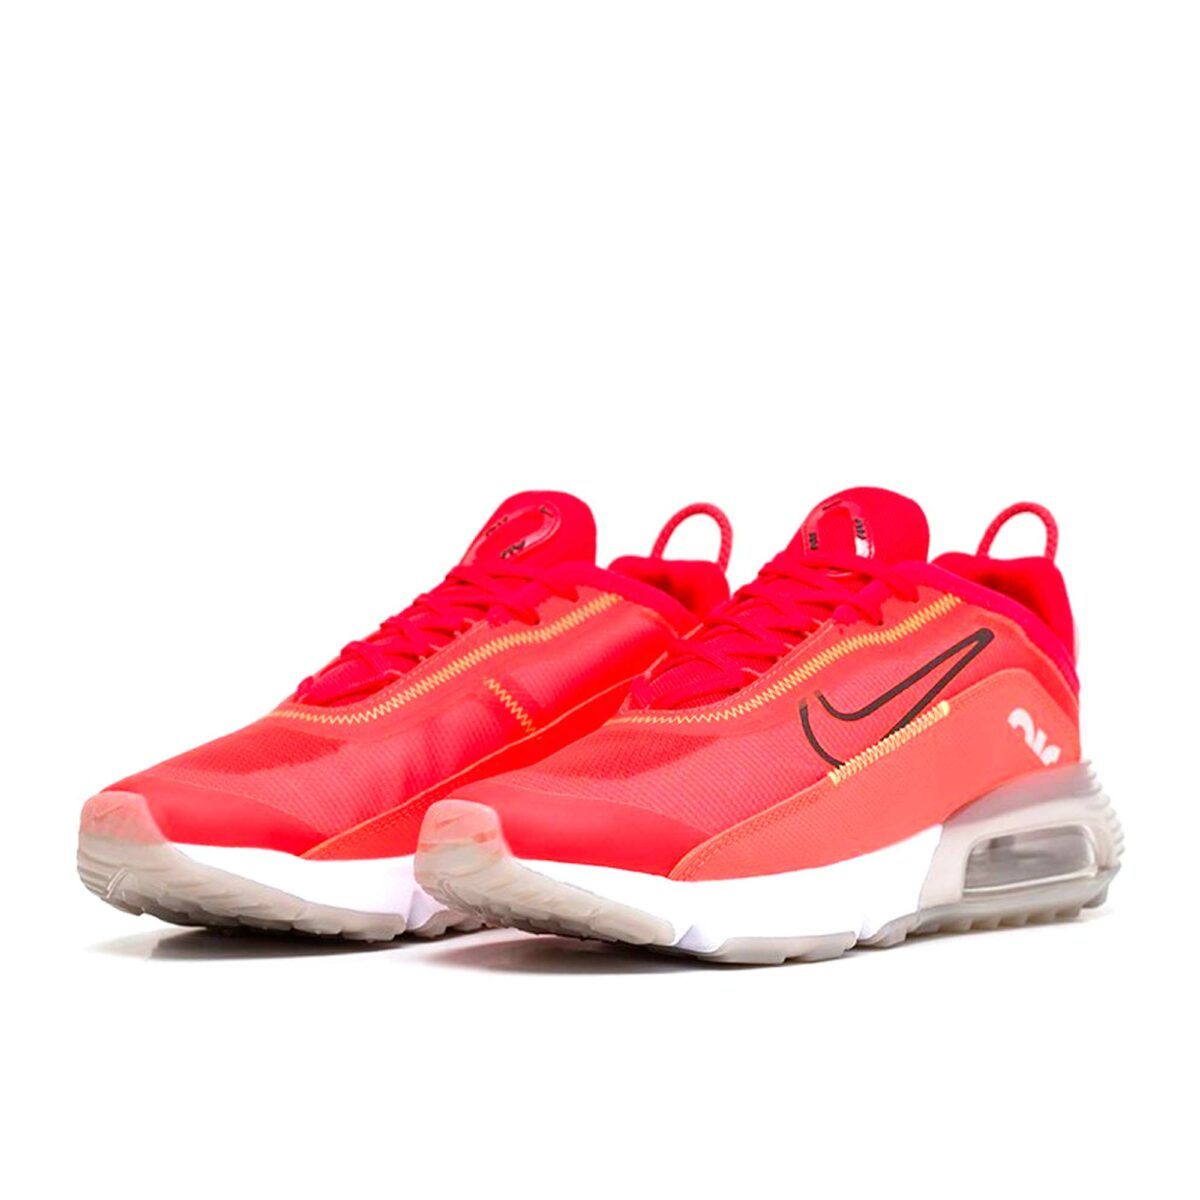 nike air max 2090 red CT7698_002 купить